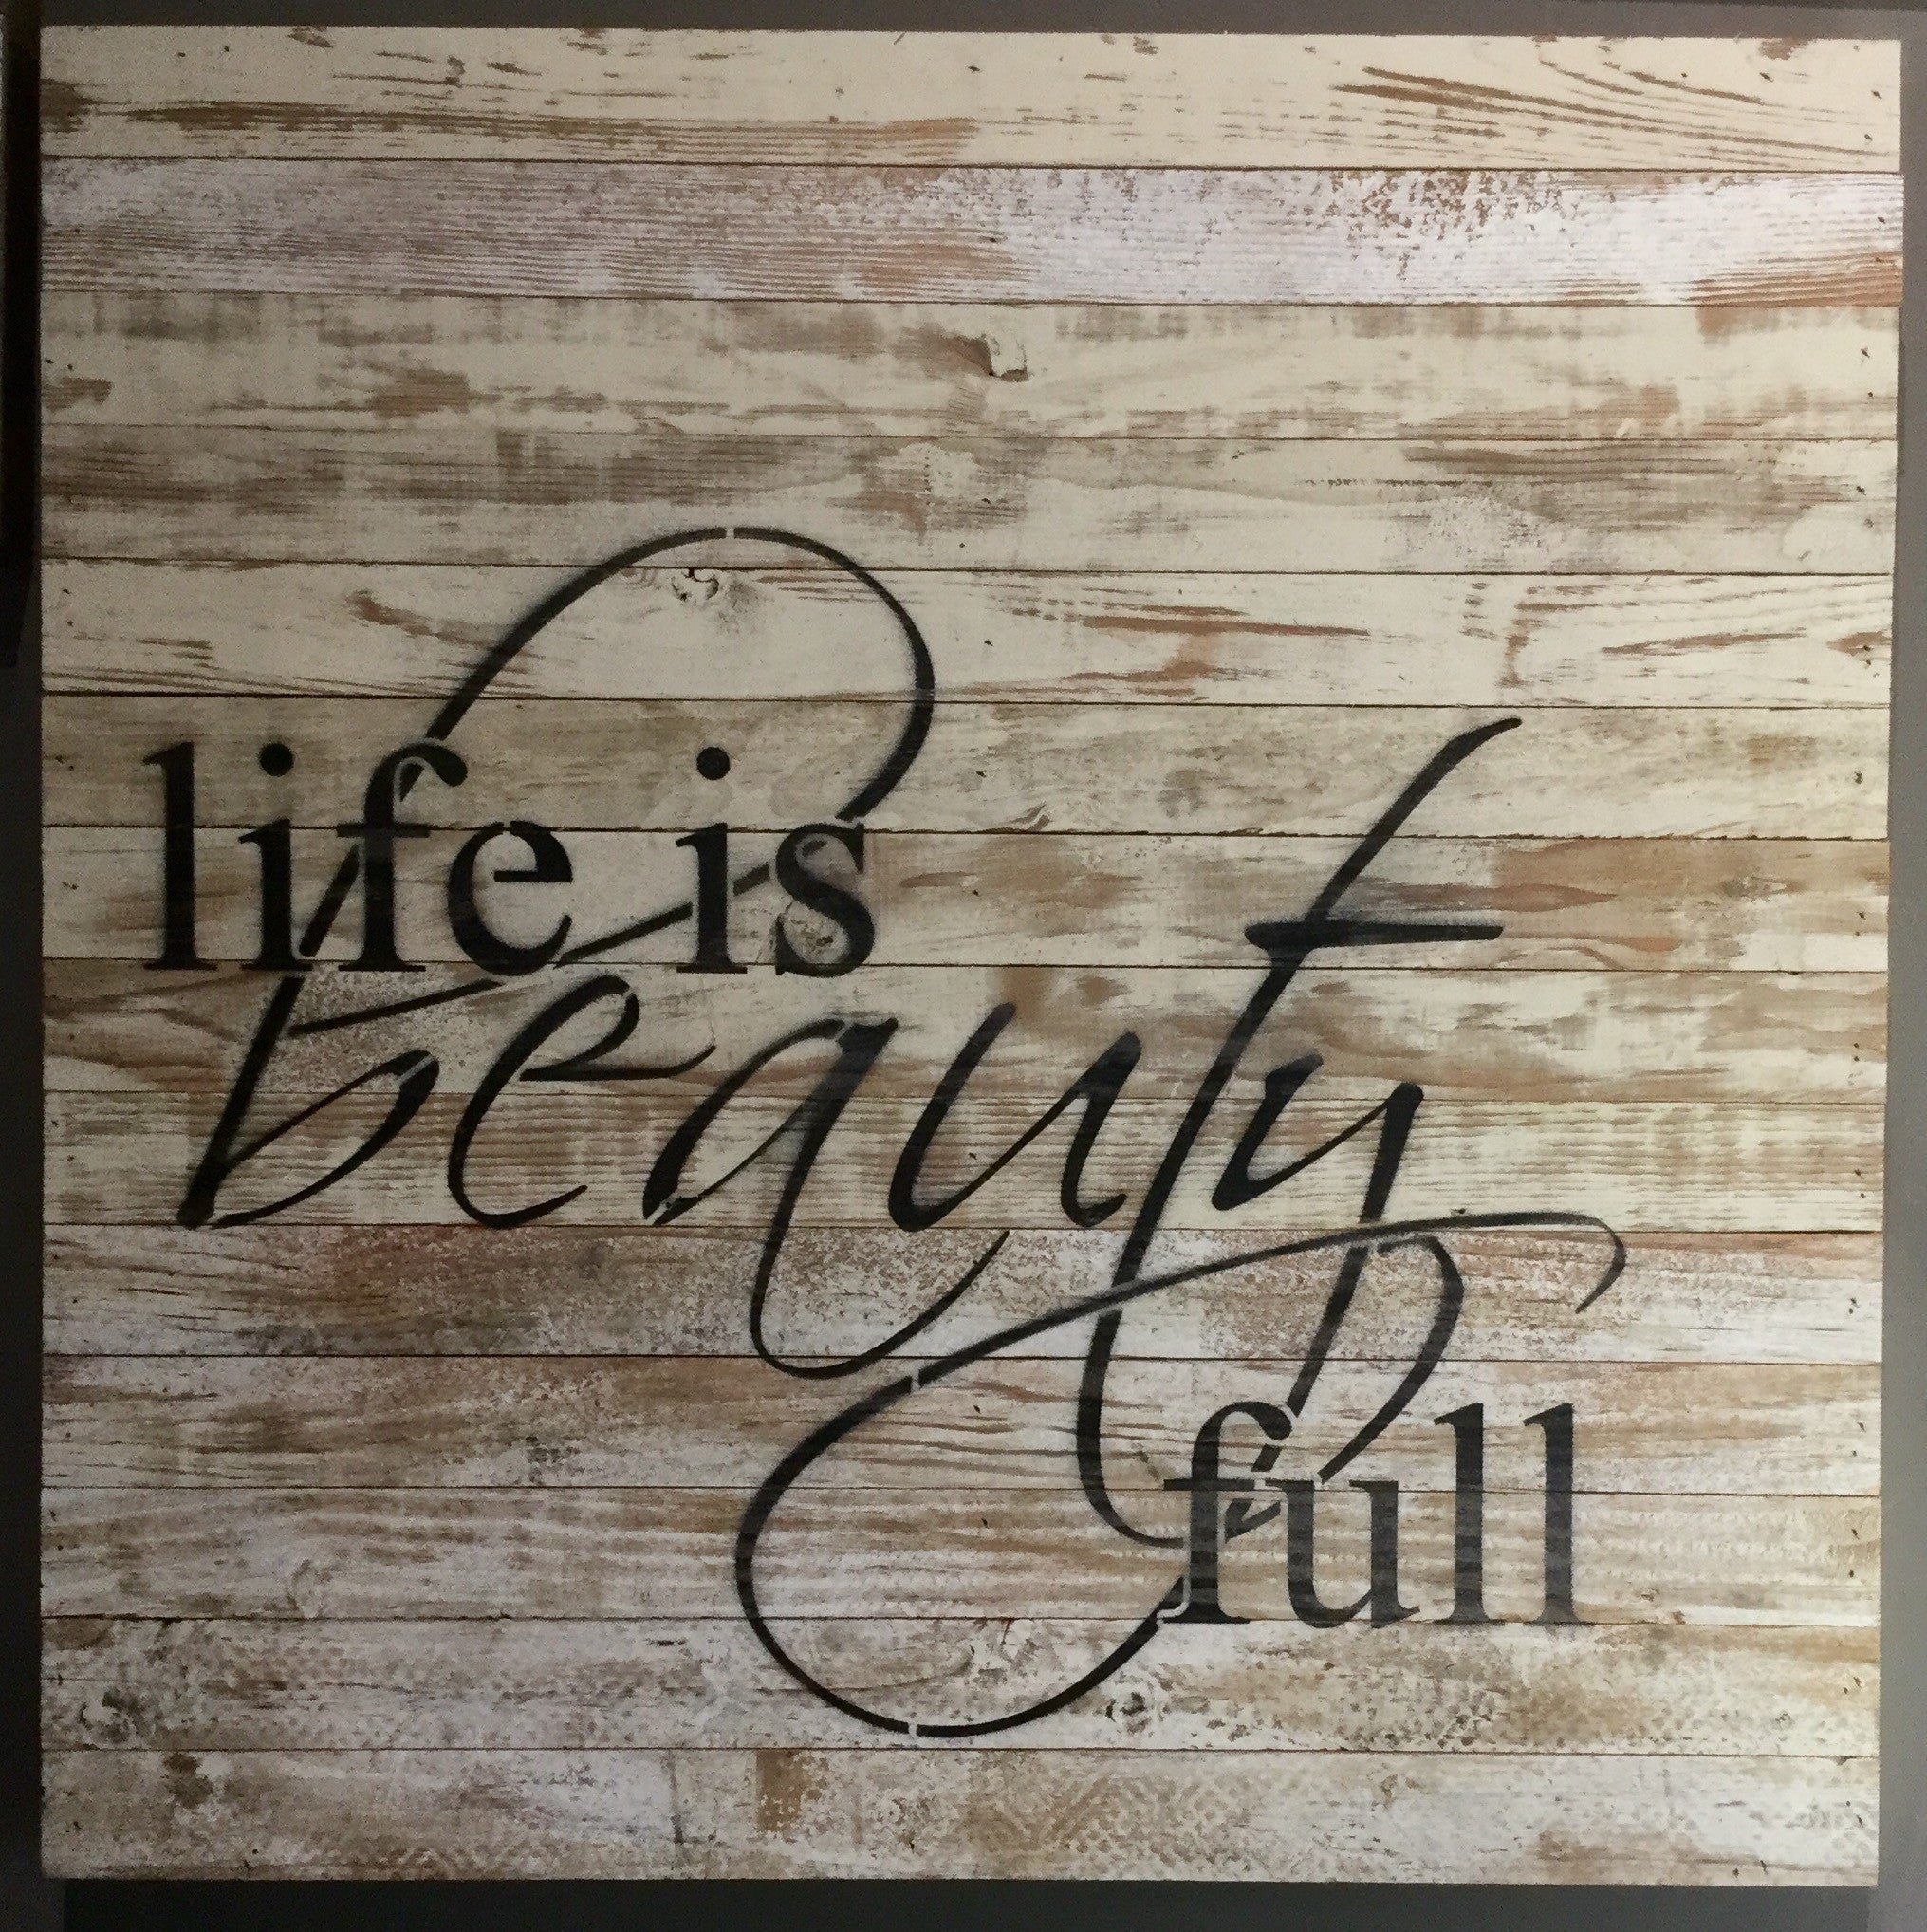 Life is Beauty Full - Painted Sign - 28x28